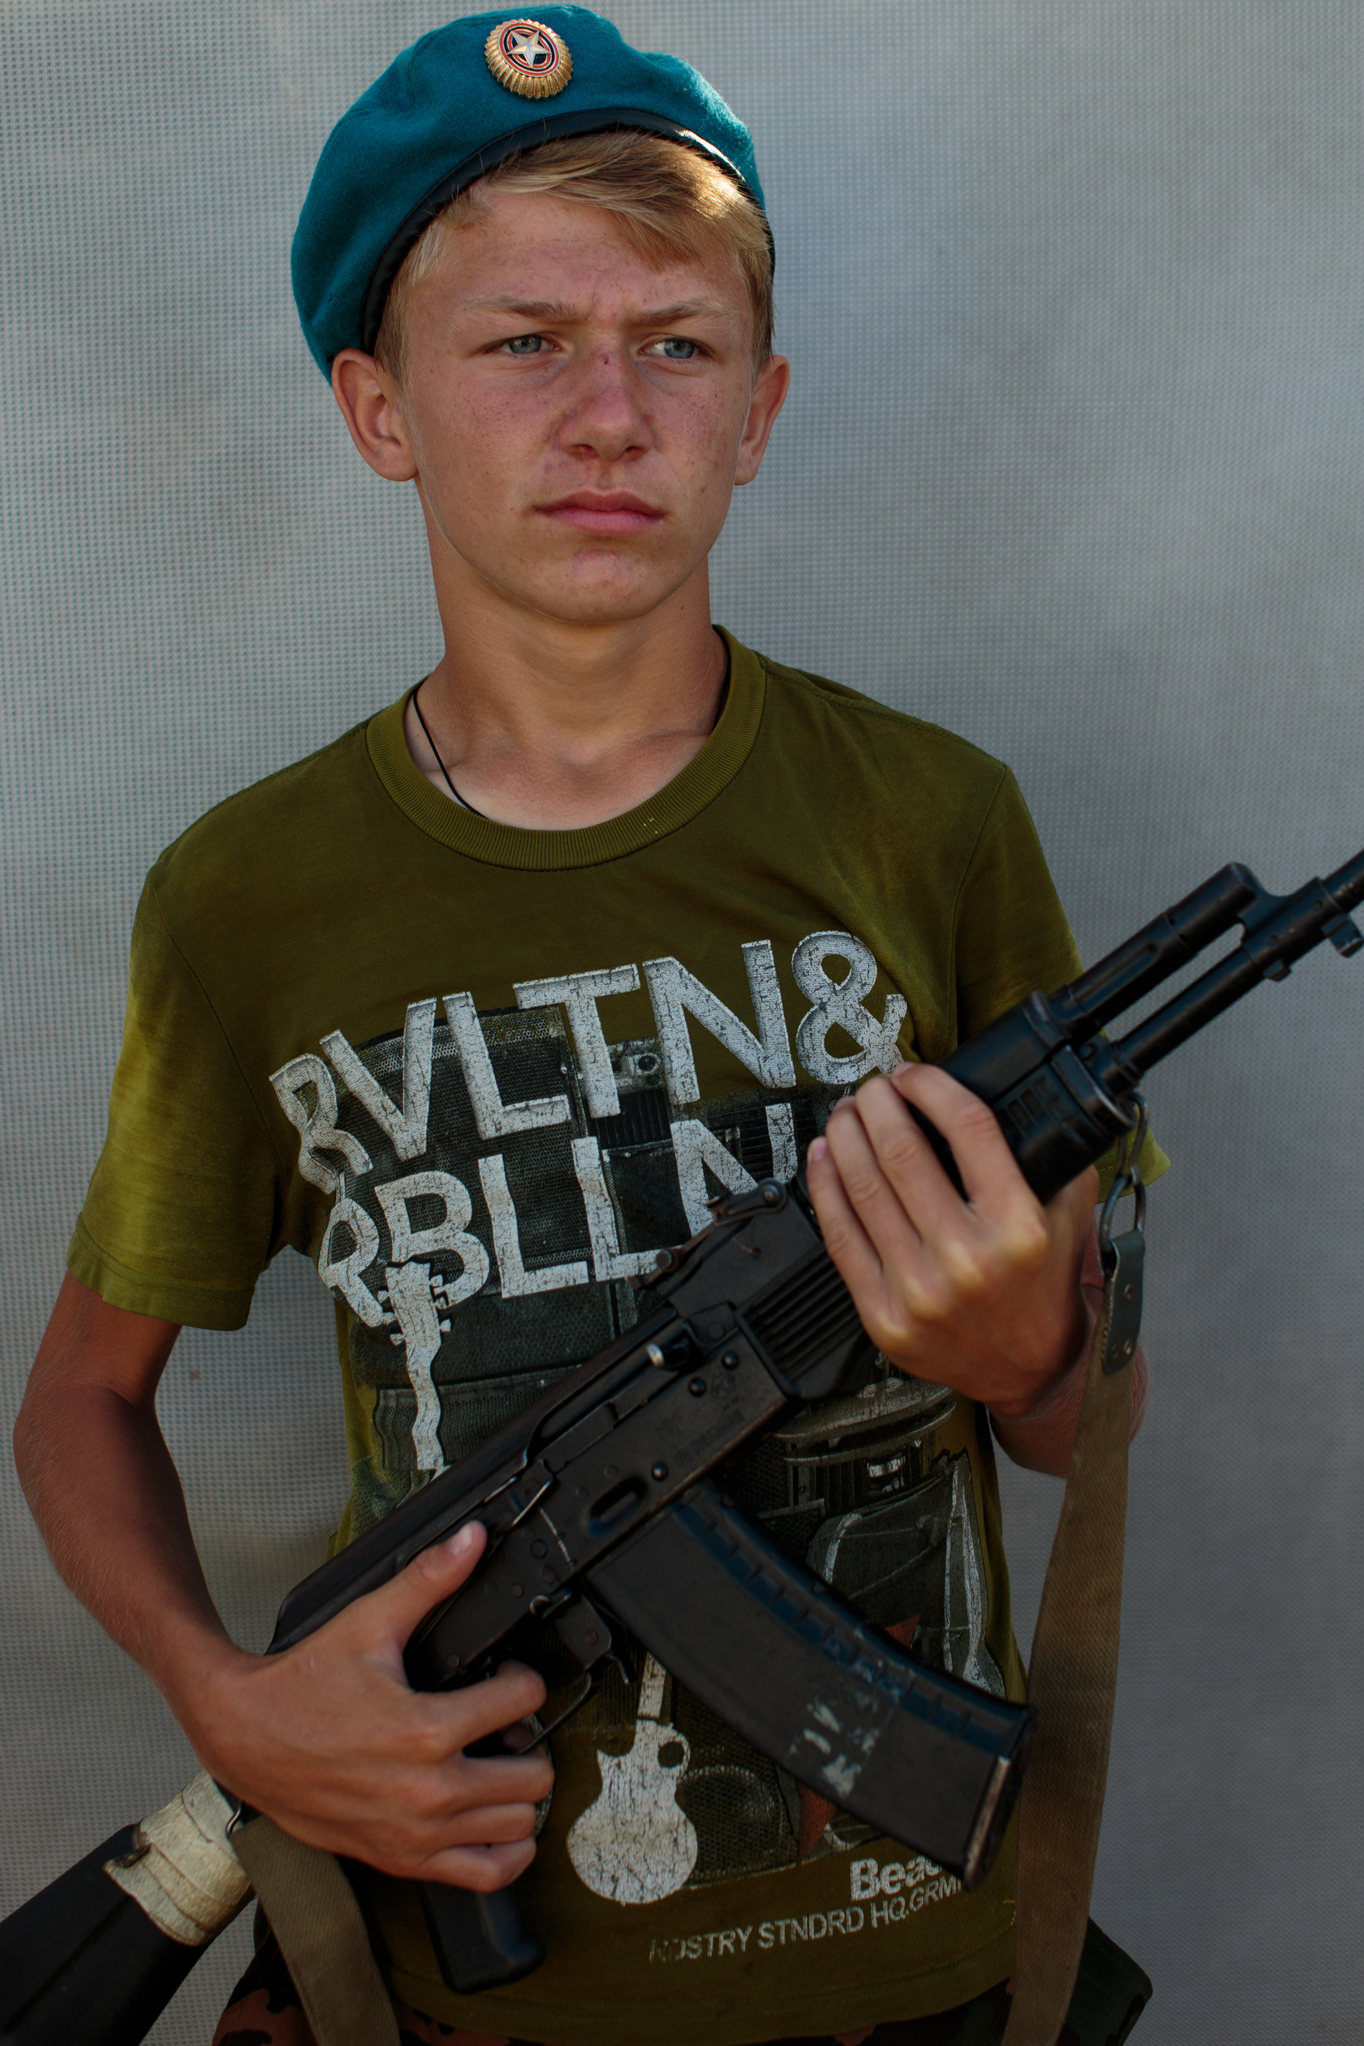 Vladimir Ribak, 14, from Moscow poses with a real but non firing gun used solely for drills.